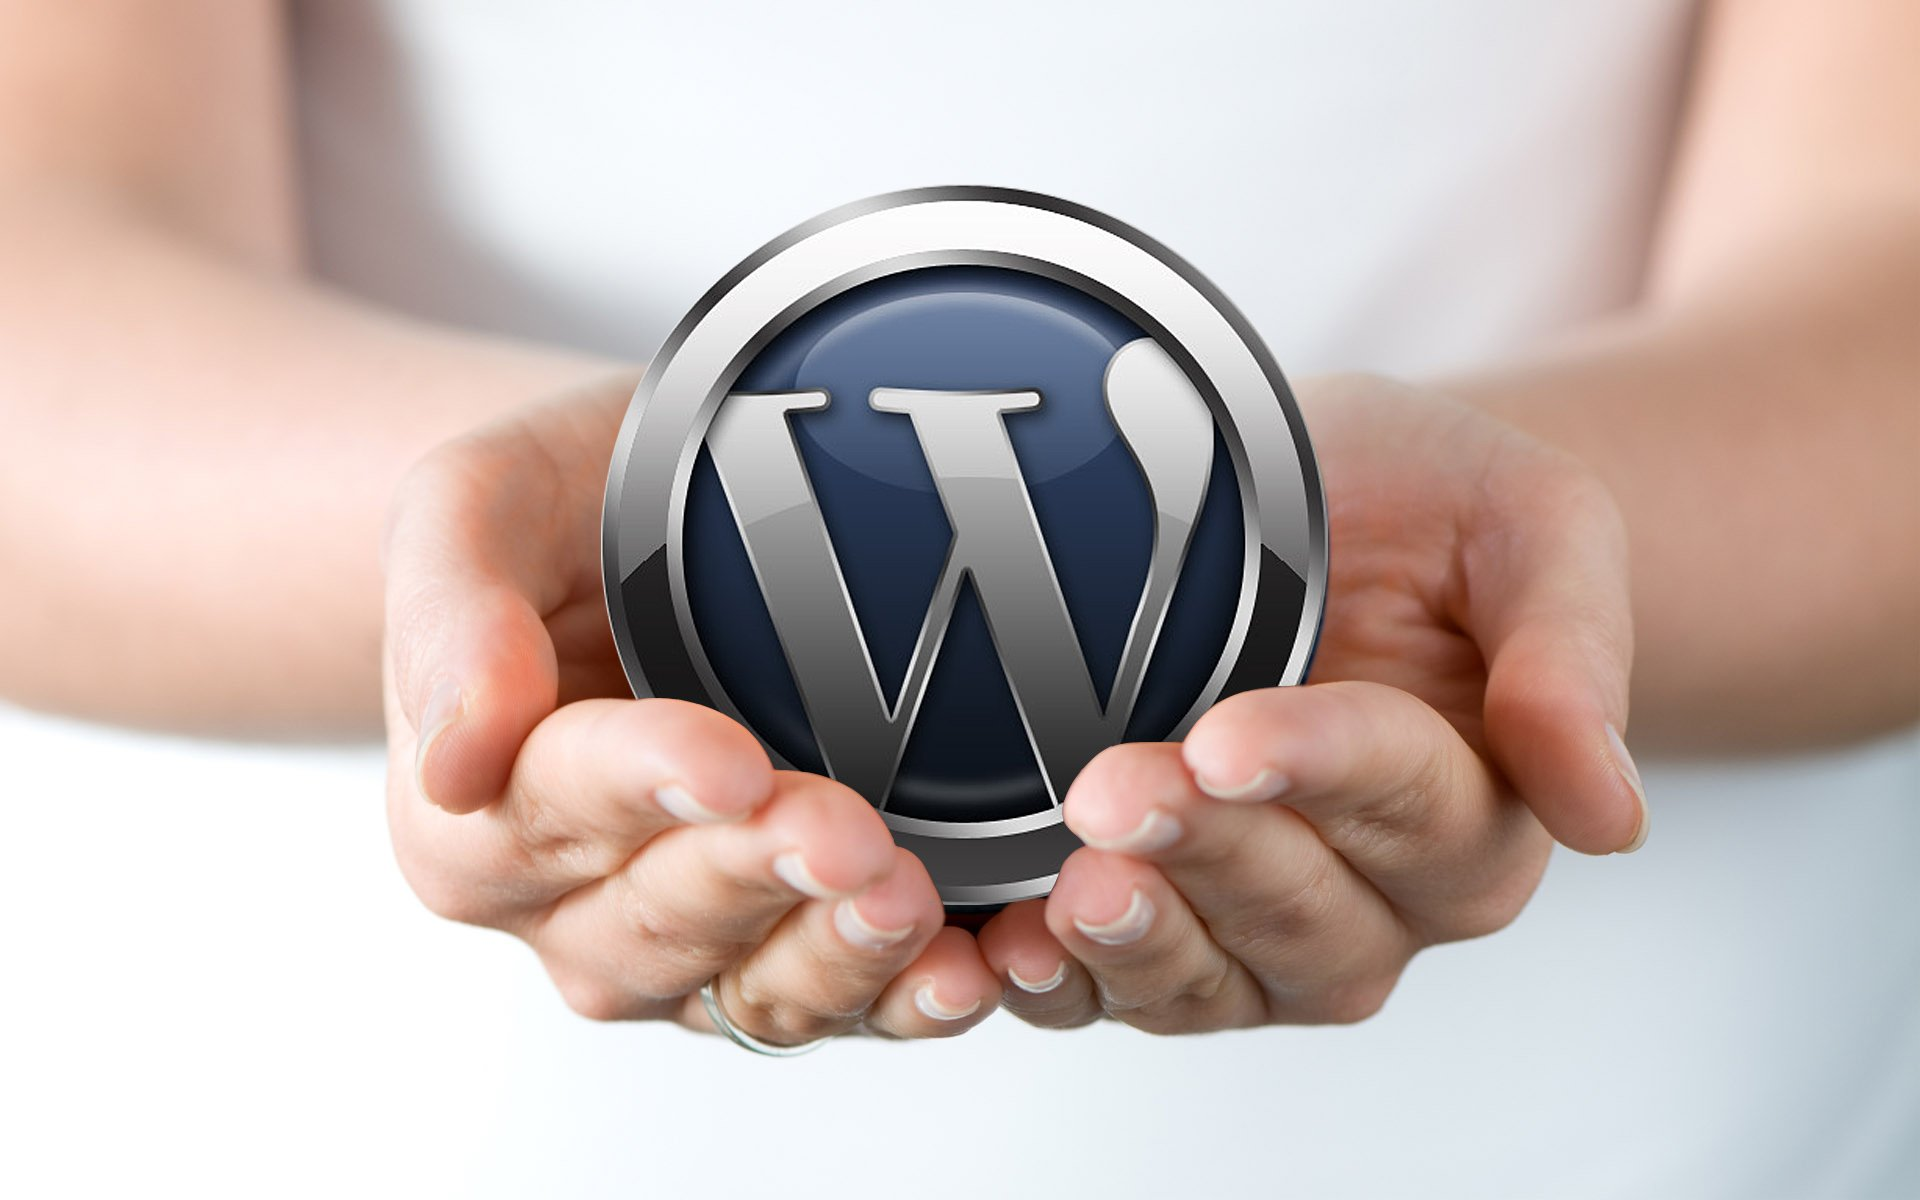 Thumbnail wordpress in hands